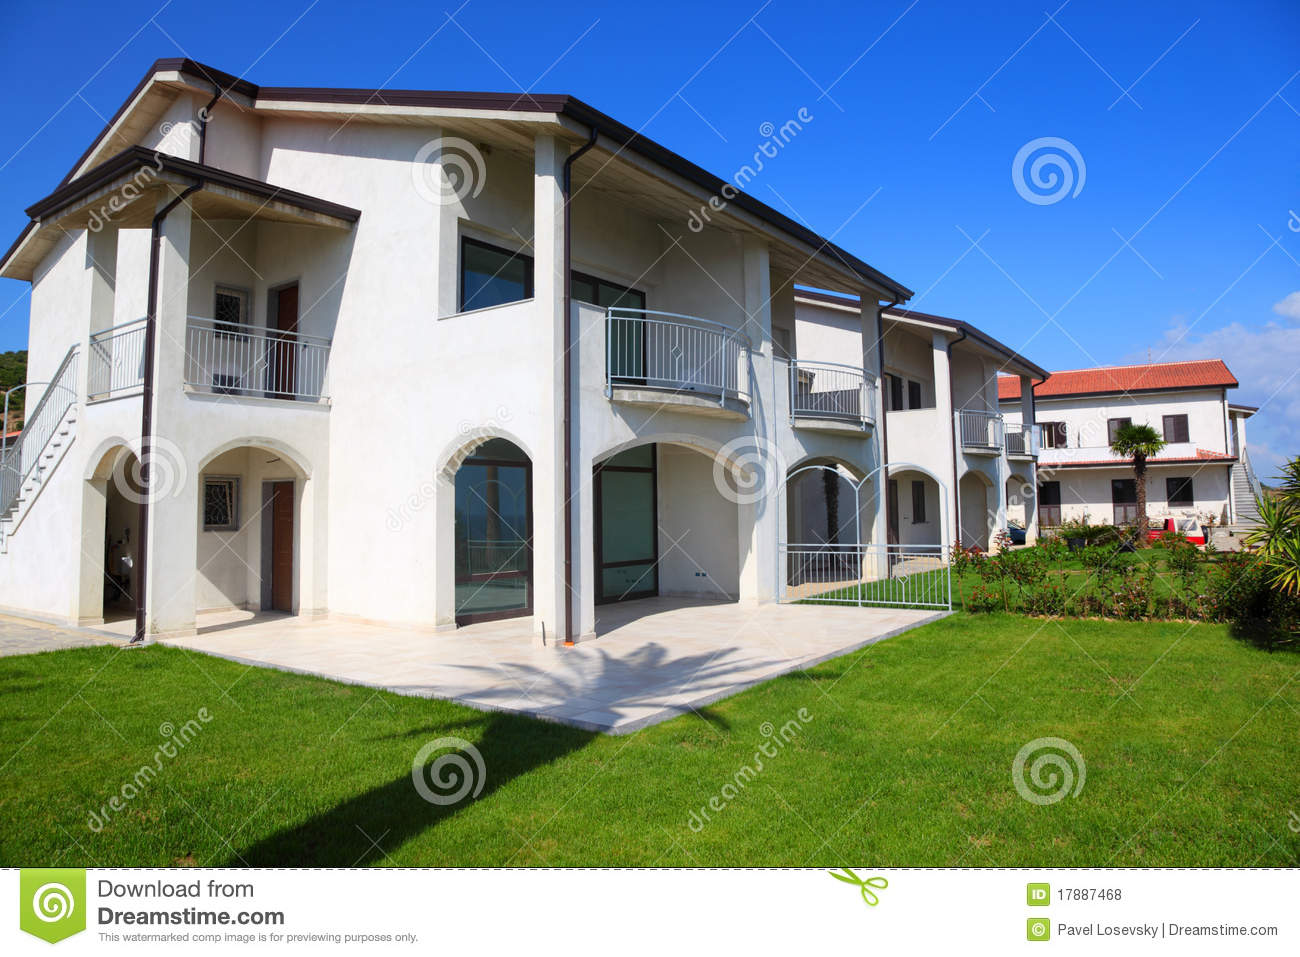 Facade Of White Two-story House With Garden Royalty Free Stock ...